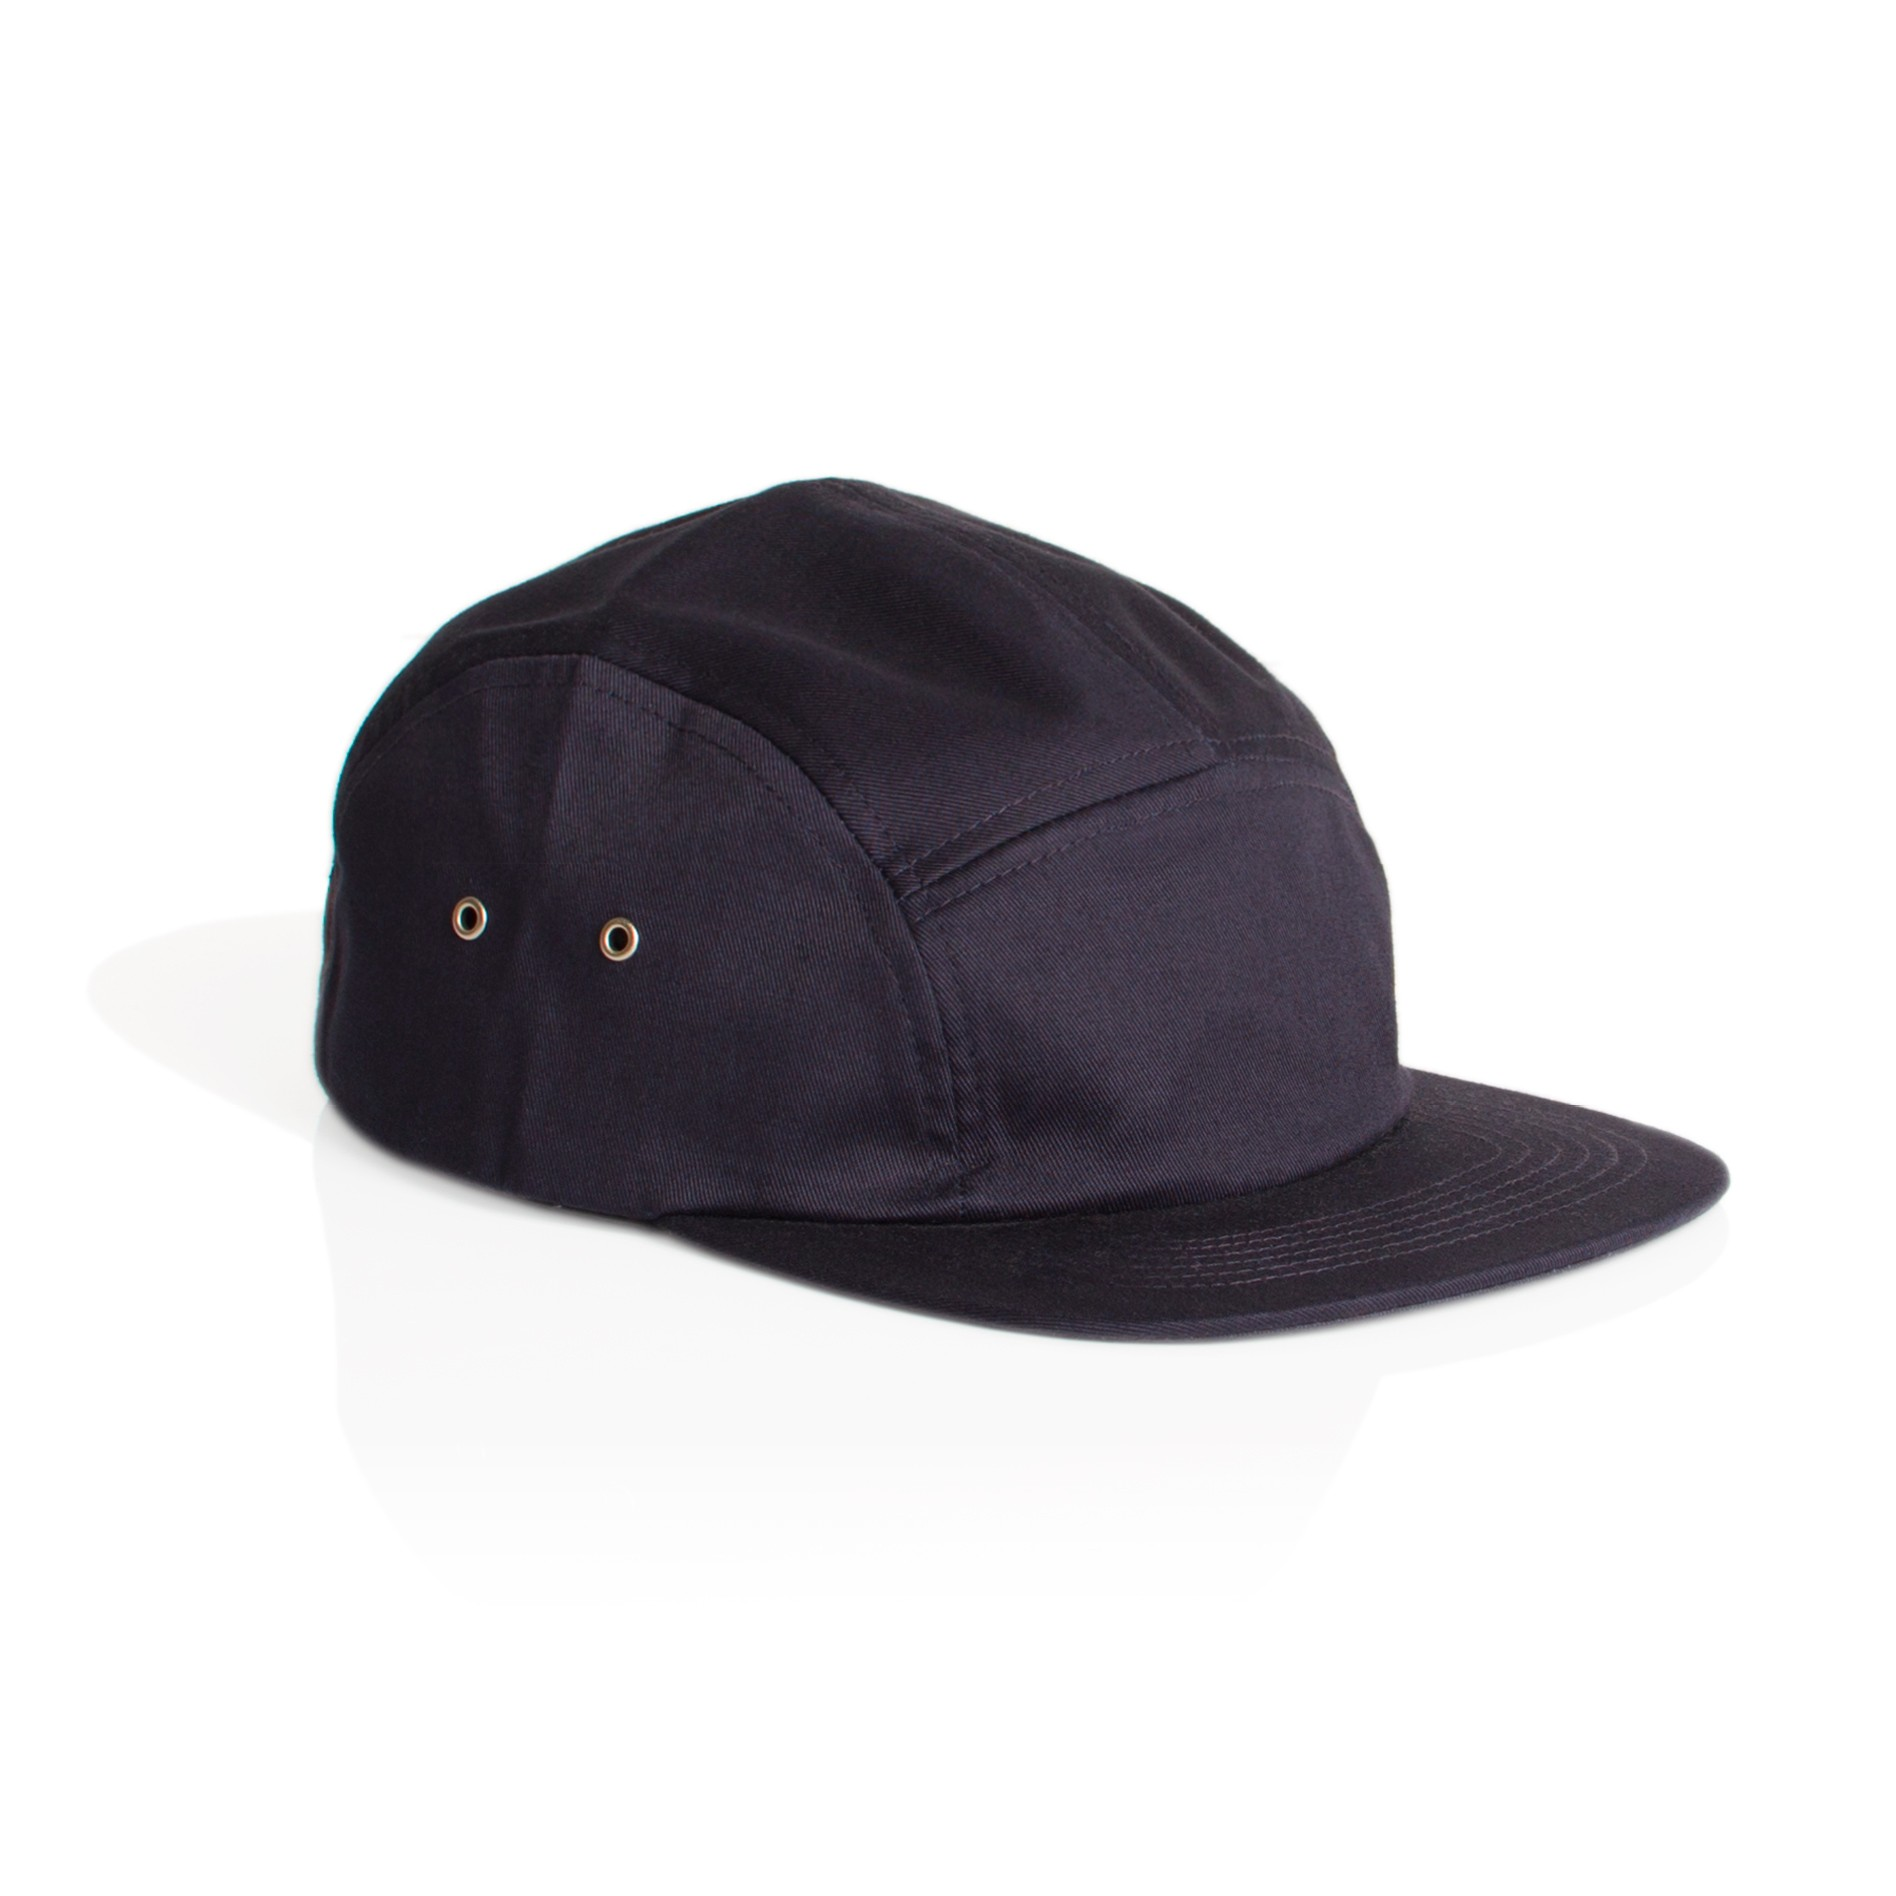 1103_finn_five_panel_cap_navy_1_1.jpg